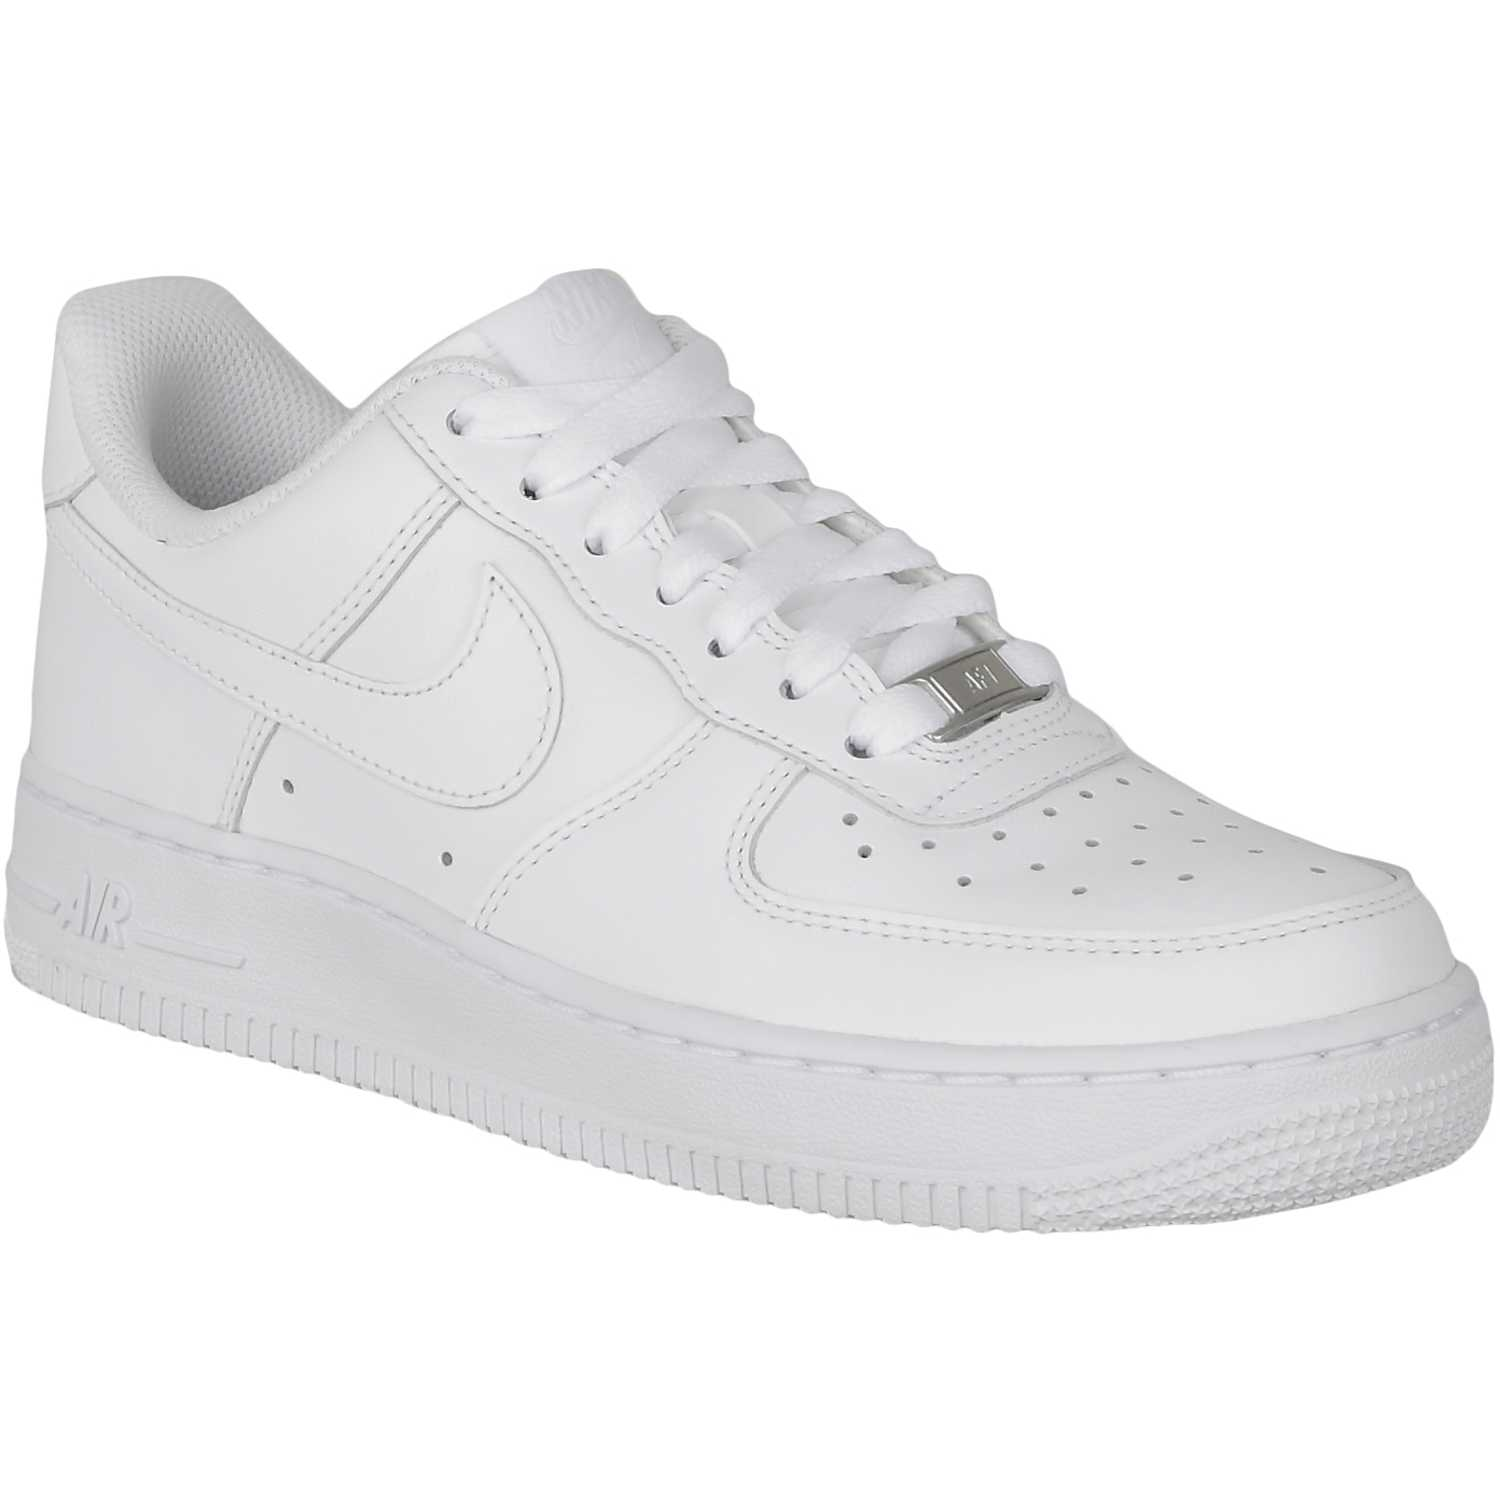 54affdb48c3d7 Zapatilla de Mujer Nike blanco wmns air force 1 07 le